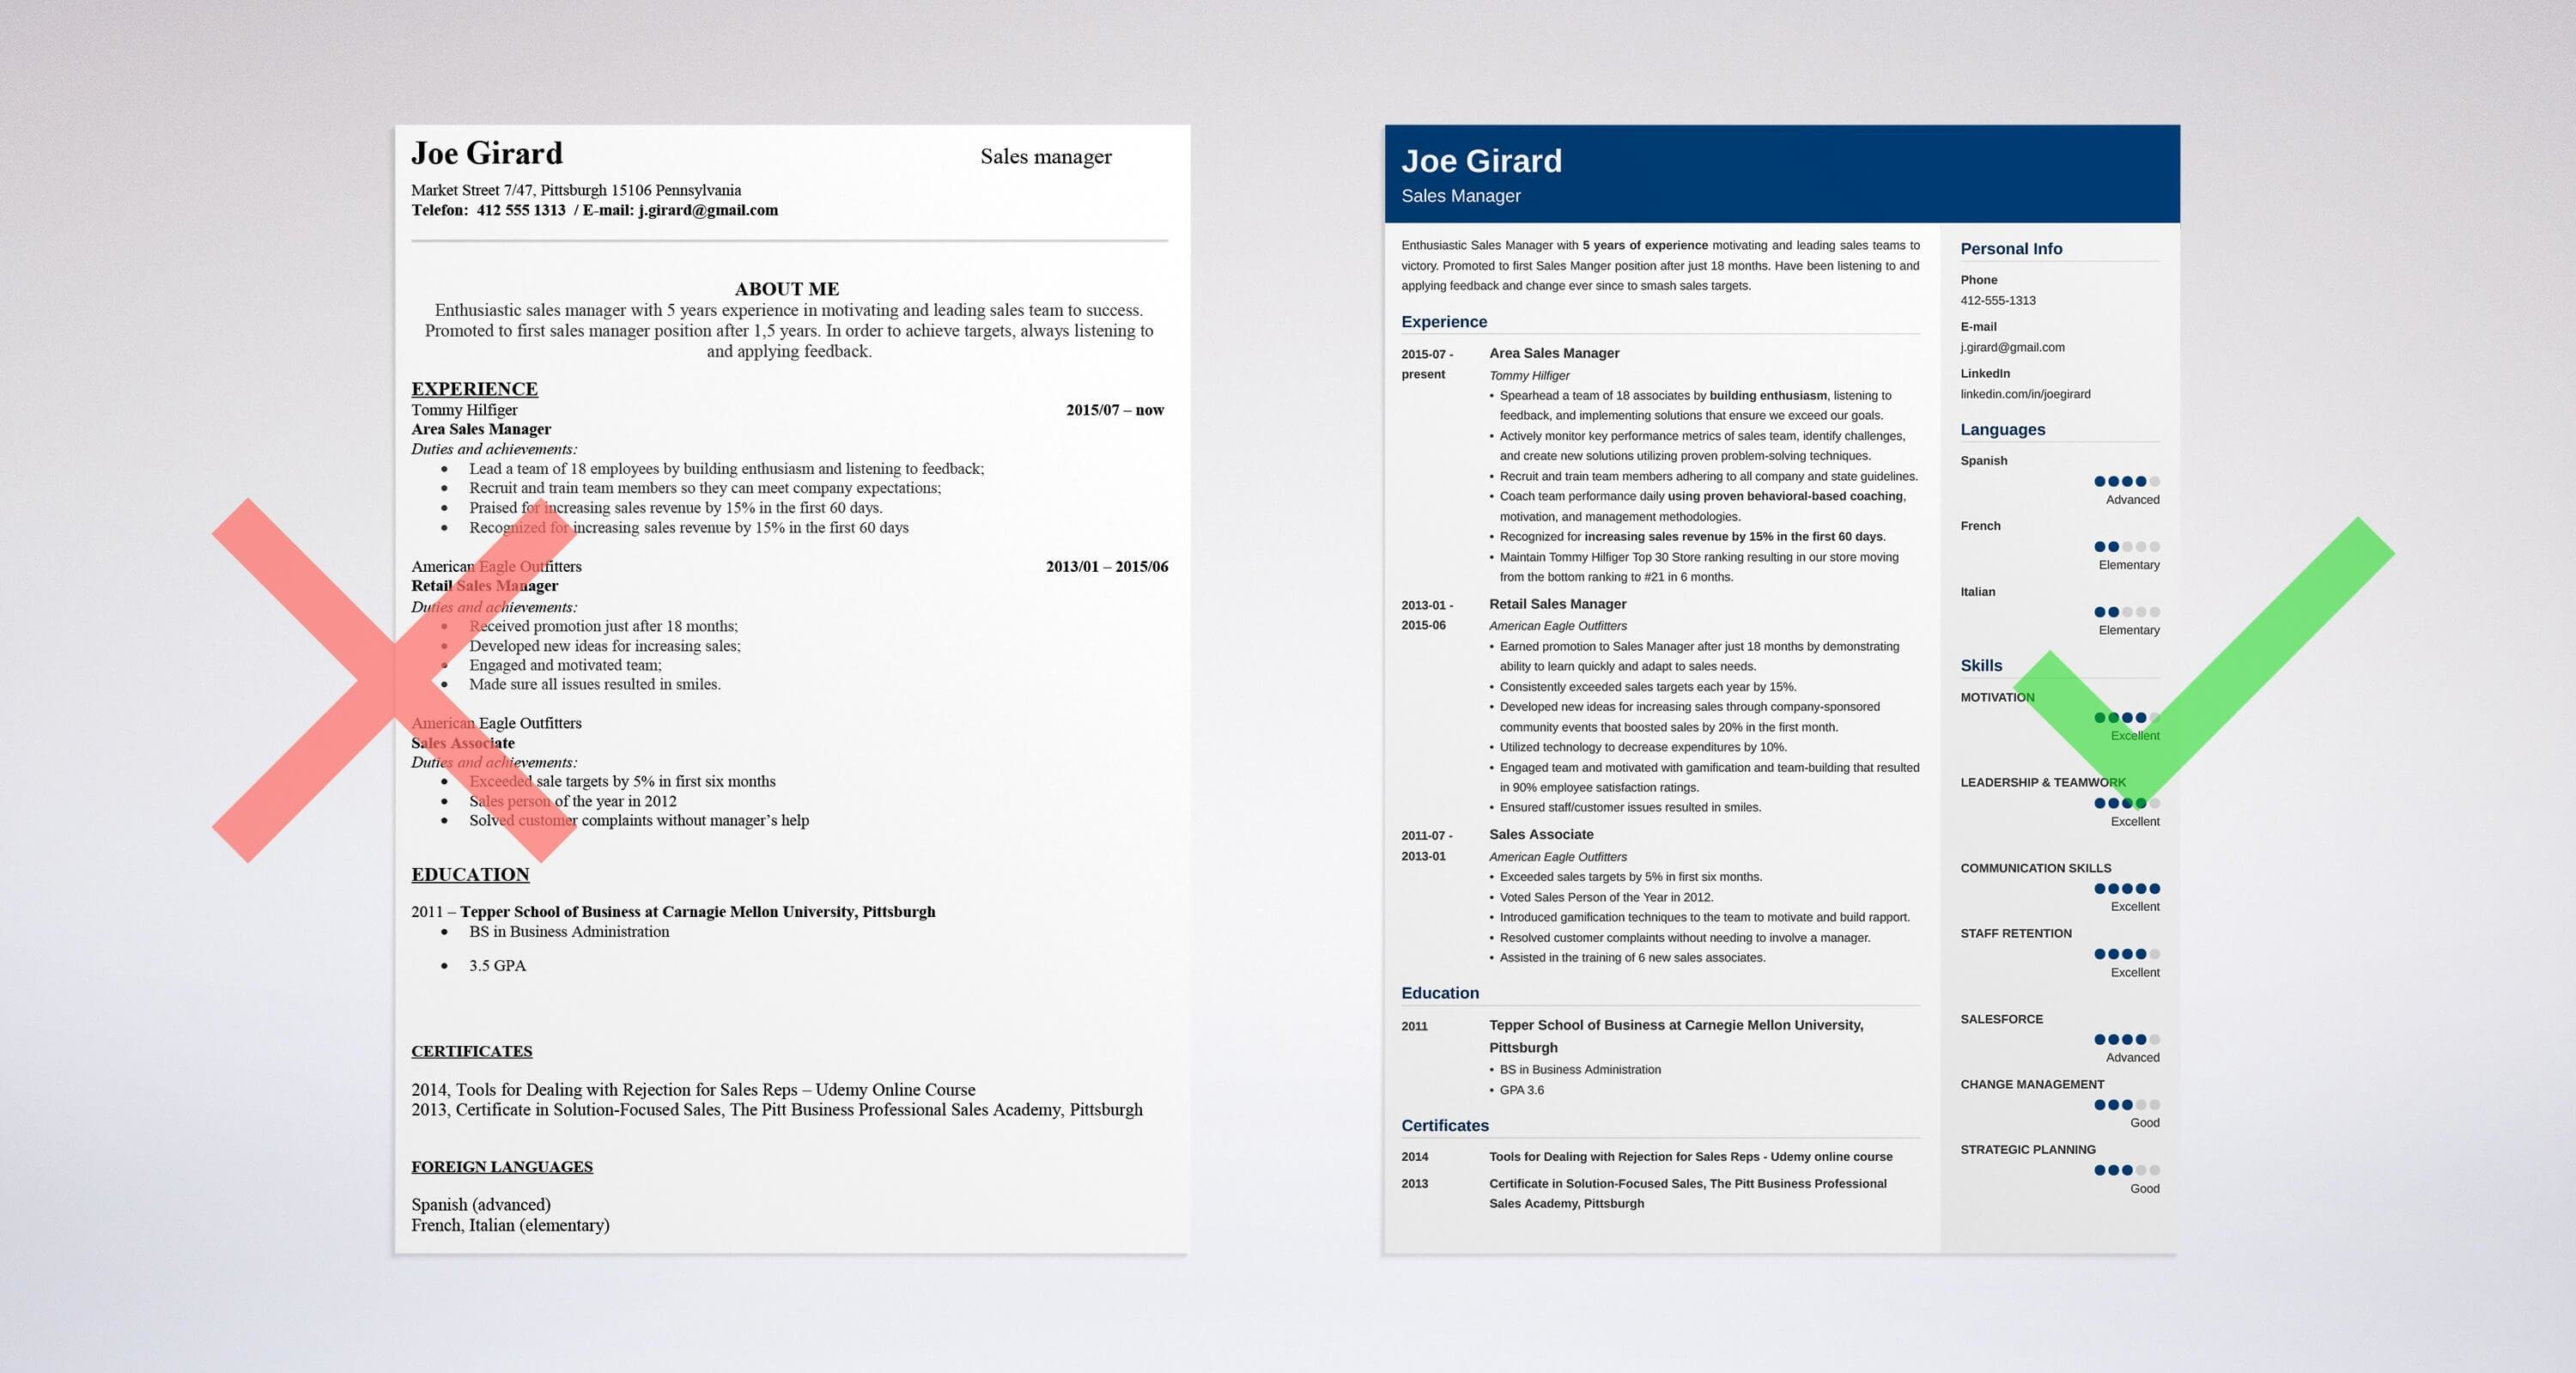 Resume Sample Of Sales Manager Sales Manager Resume Sample And Complete Guide 4320 Examples